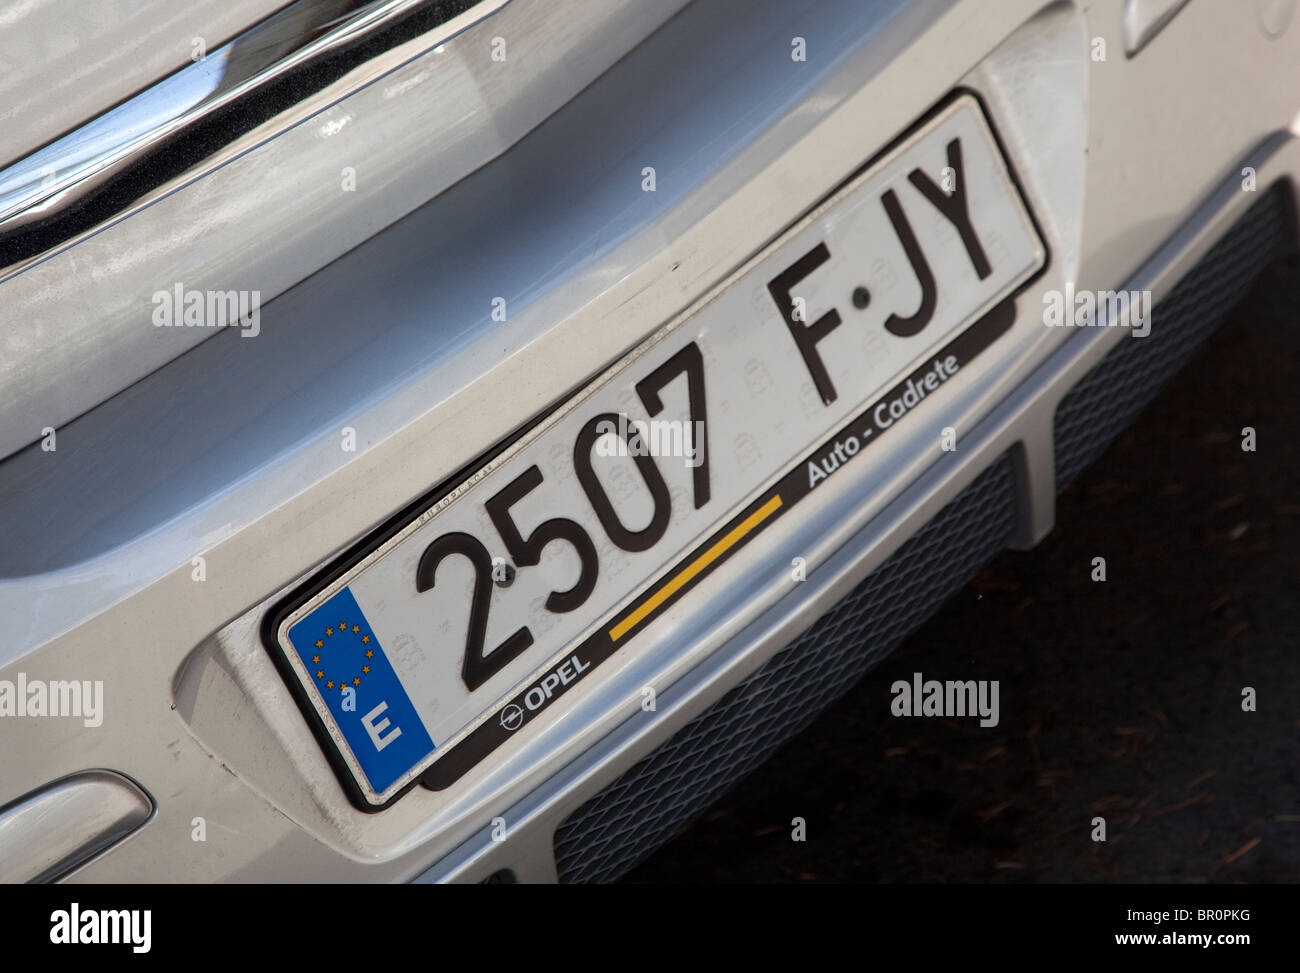 Number Plate On Spanish Registered Car Spain Stock Photo 31365252